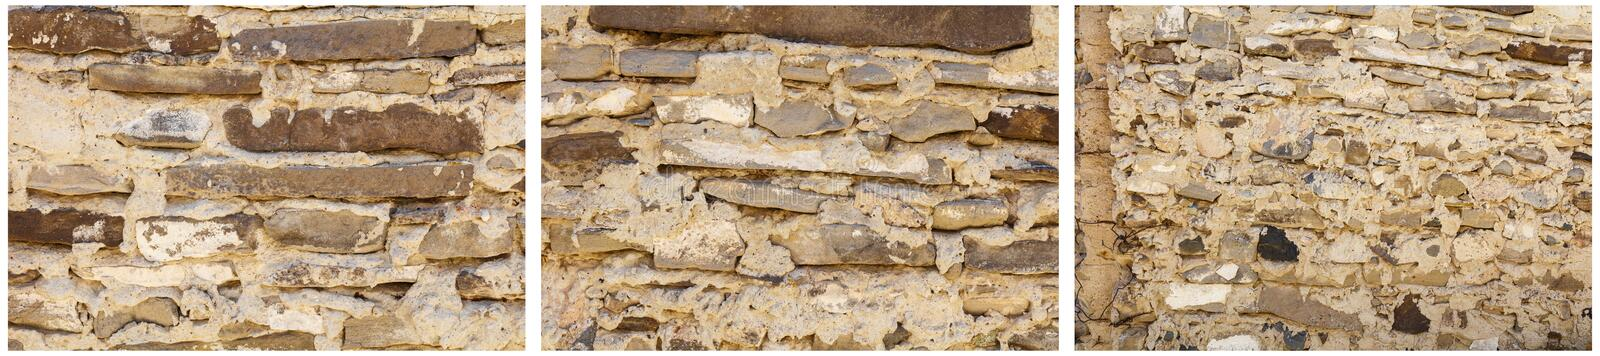 Sandstone slab old wall stacked mortar collage. Sandstone sedimentary rocks stack mortar old pattern texture dry wall vintage outdoor construction collage stock photography